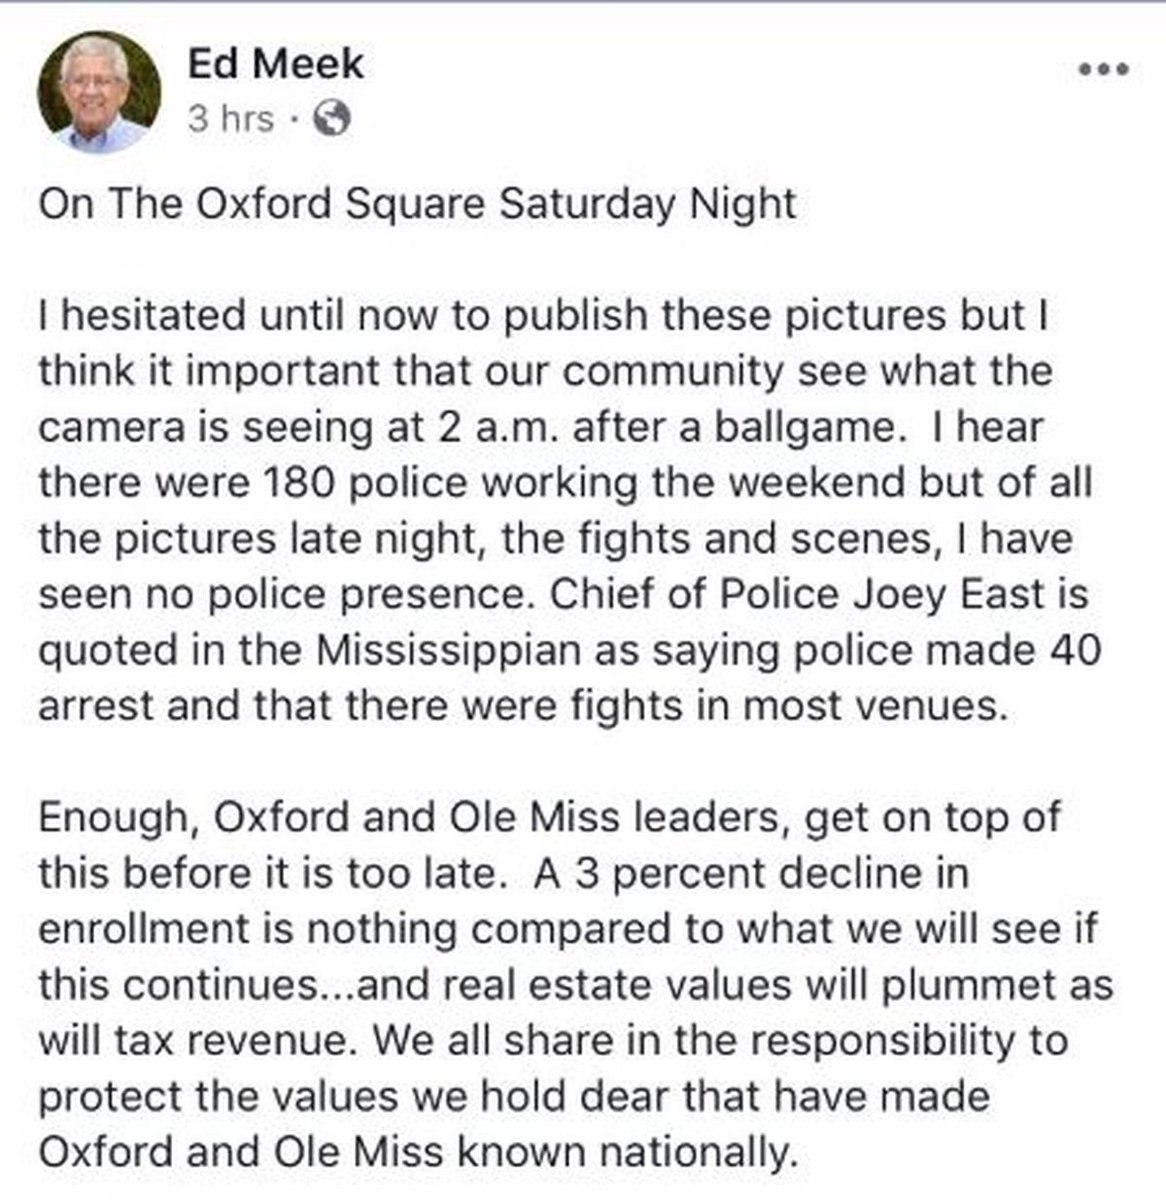 Man whose name is on Ole Miss School of Journalism accused of racist Facebook post #wmc5 >>https://t.co/PKT2fS1Xg0